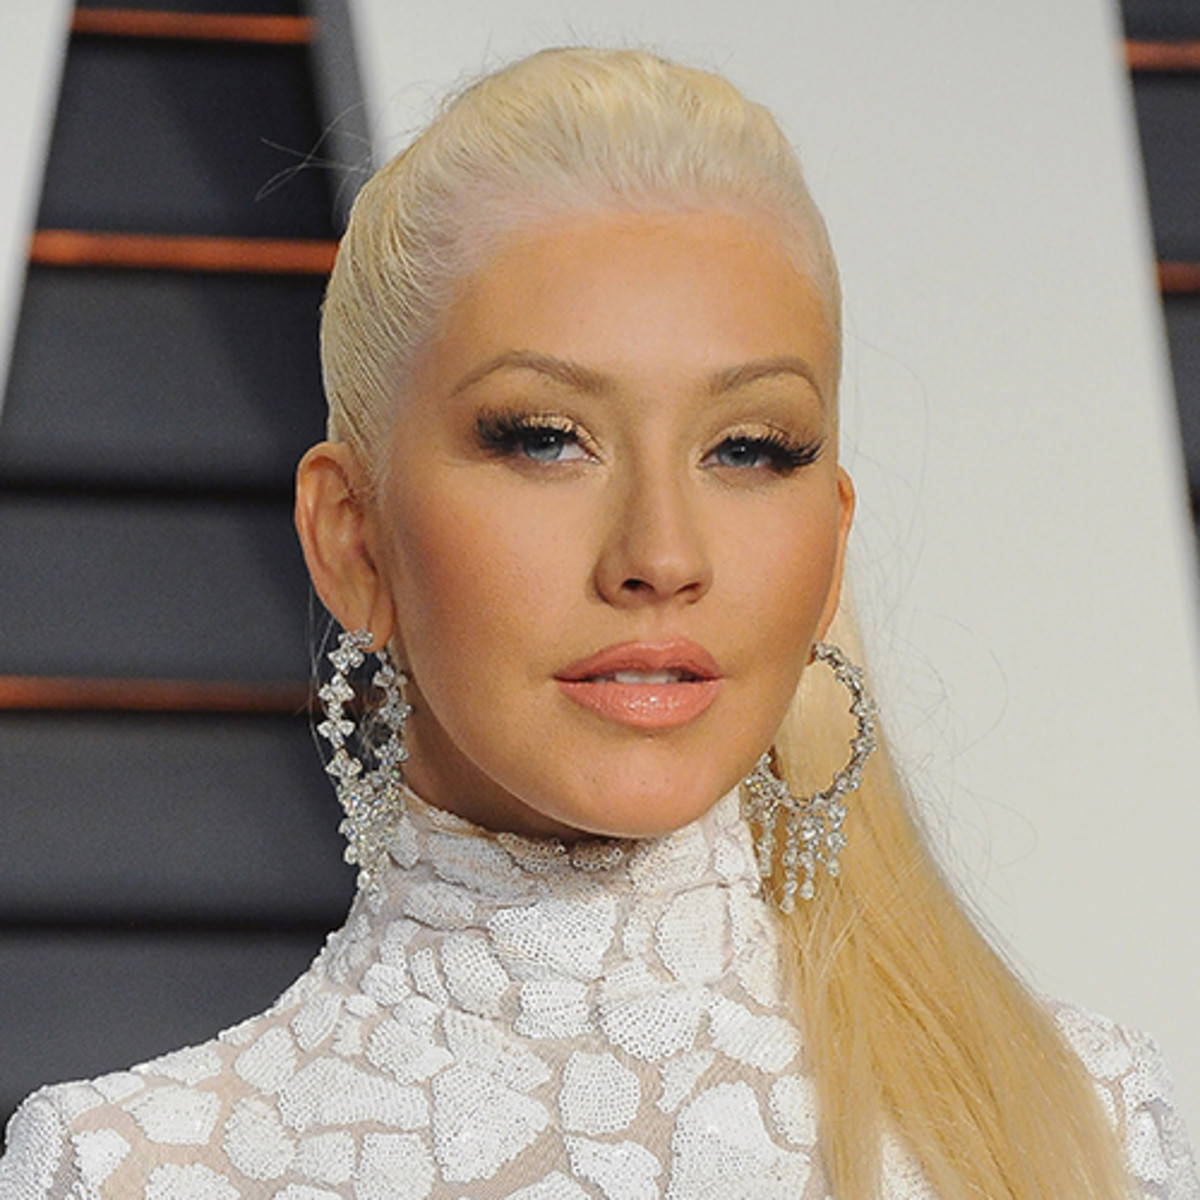 christina-aguilera-says-shes-done-dieting-despite-still-being-hypercritical-of-her-body-image-at-times